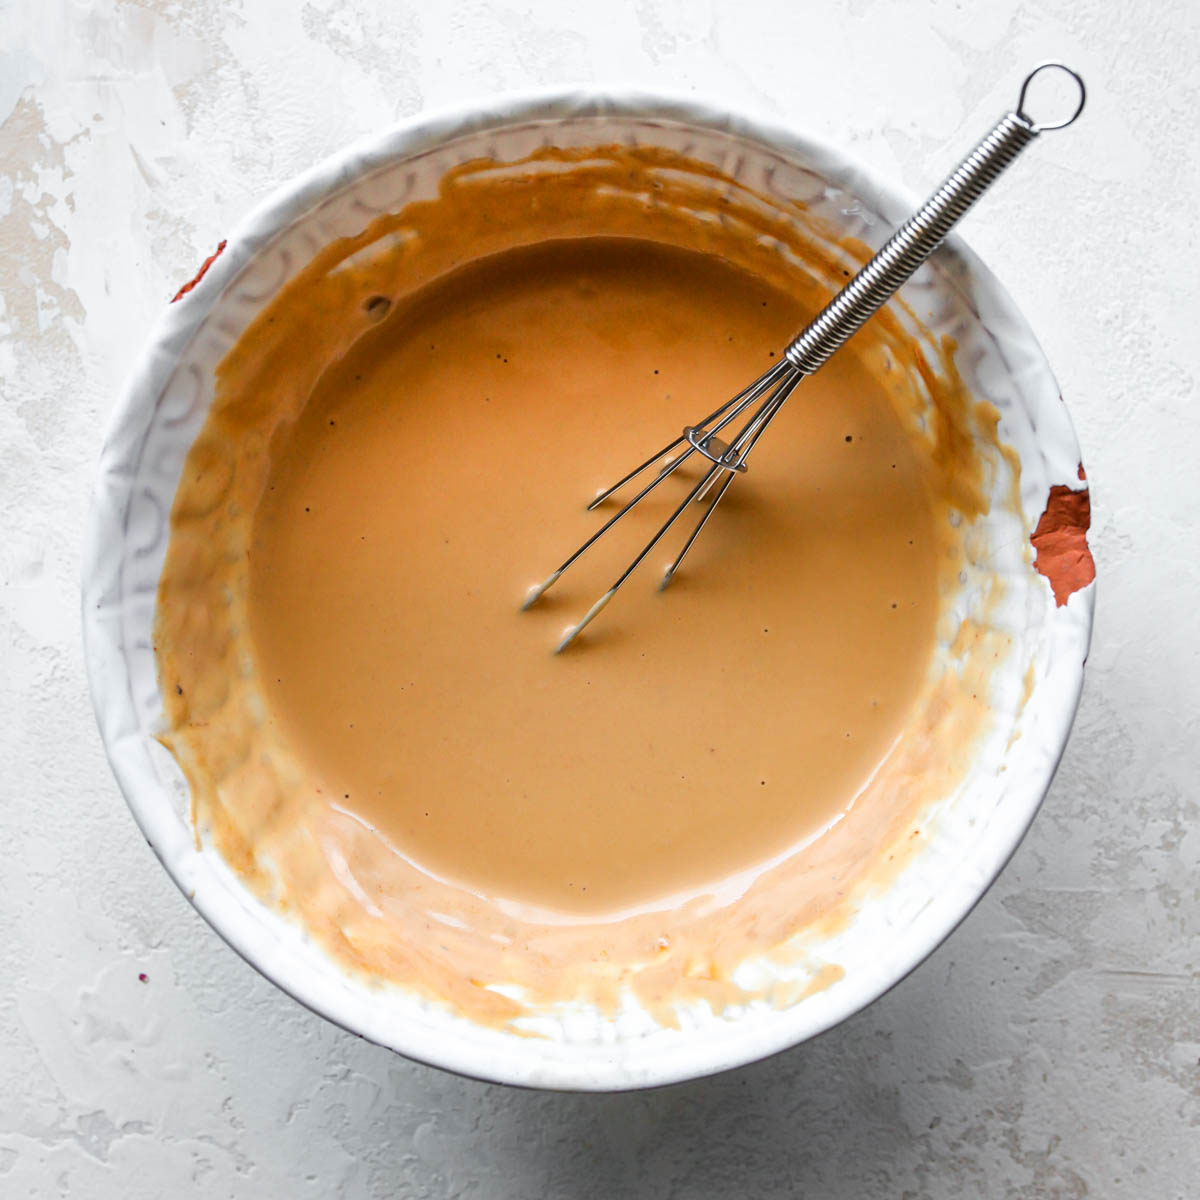 Tahini, adobo sauce, and lime juice being whisked together in a white bowl